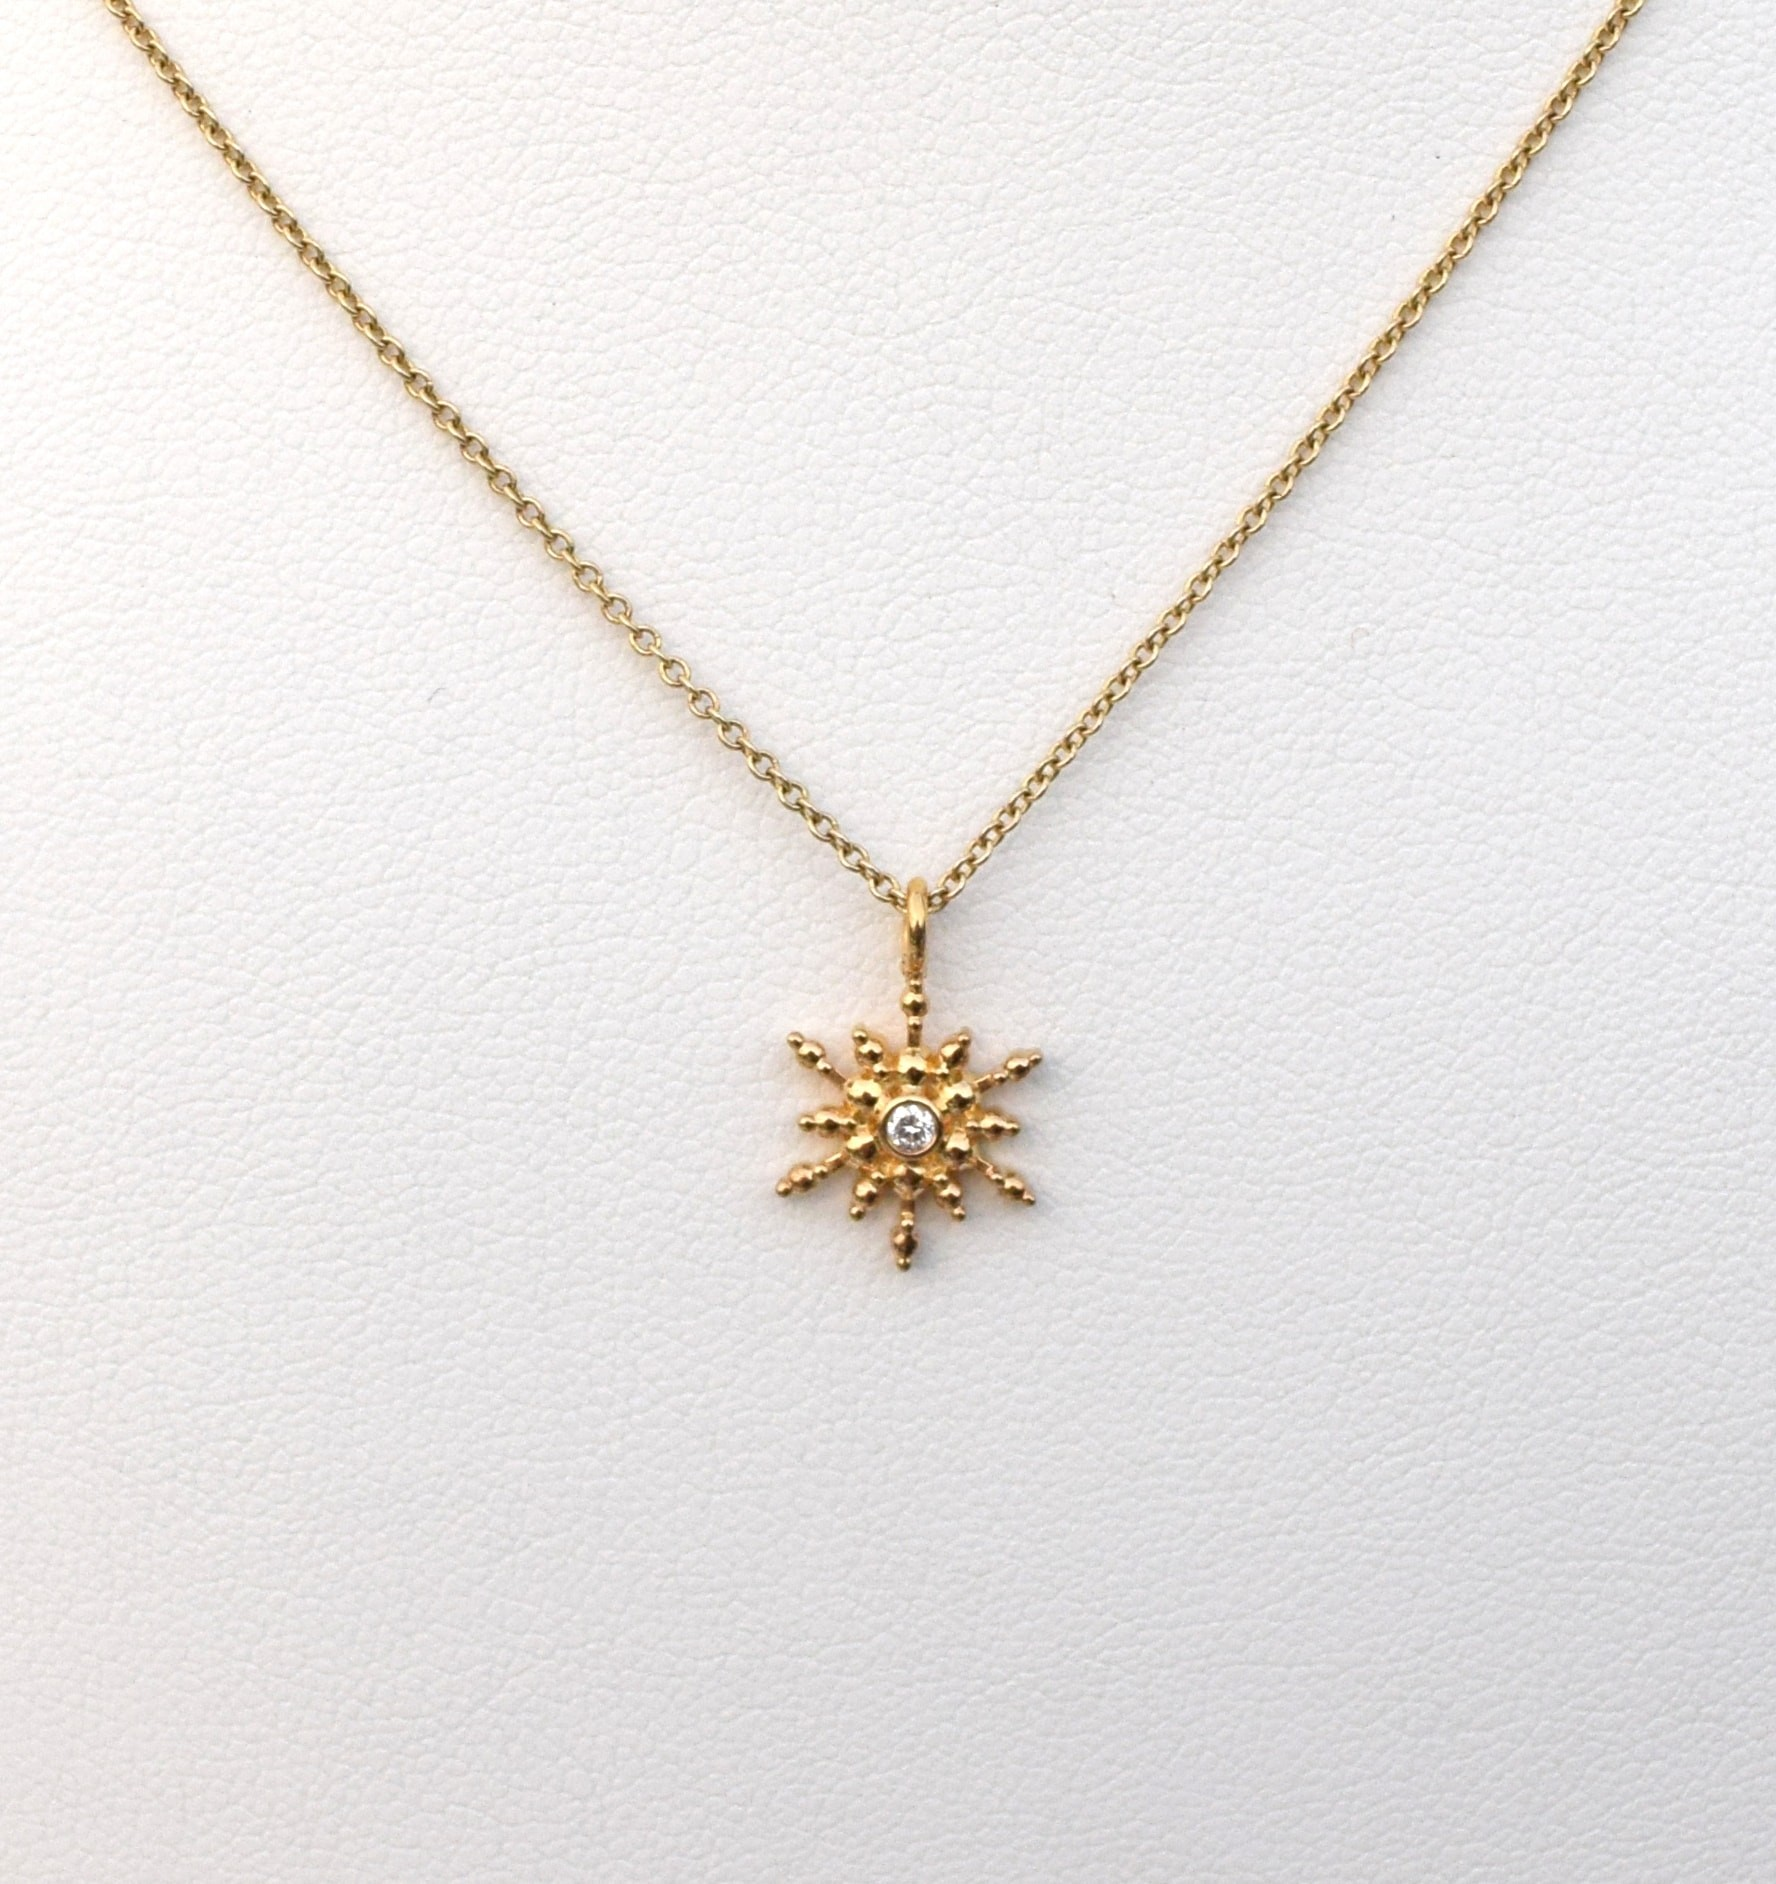 Snowflake / Starburst Diamond Pendant - Silver and 18k Yellow Gold